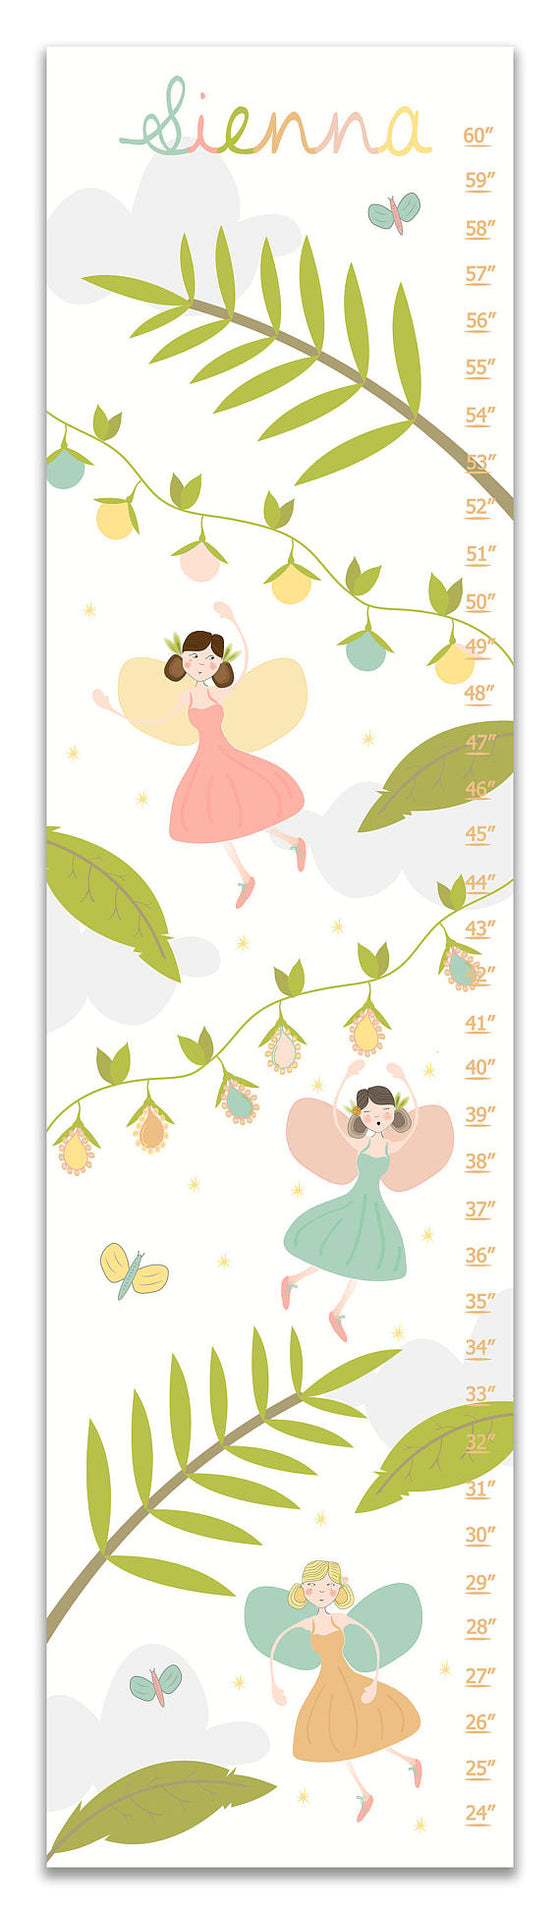 Woodland Fairy Personalized Growth Chart - Nursery Decor - Baby Gifts